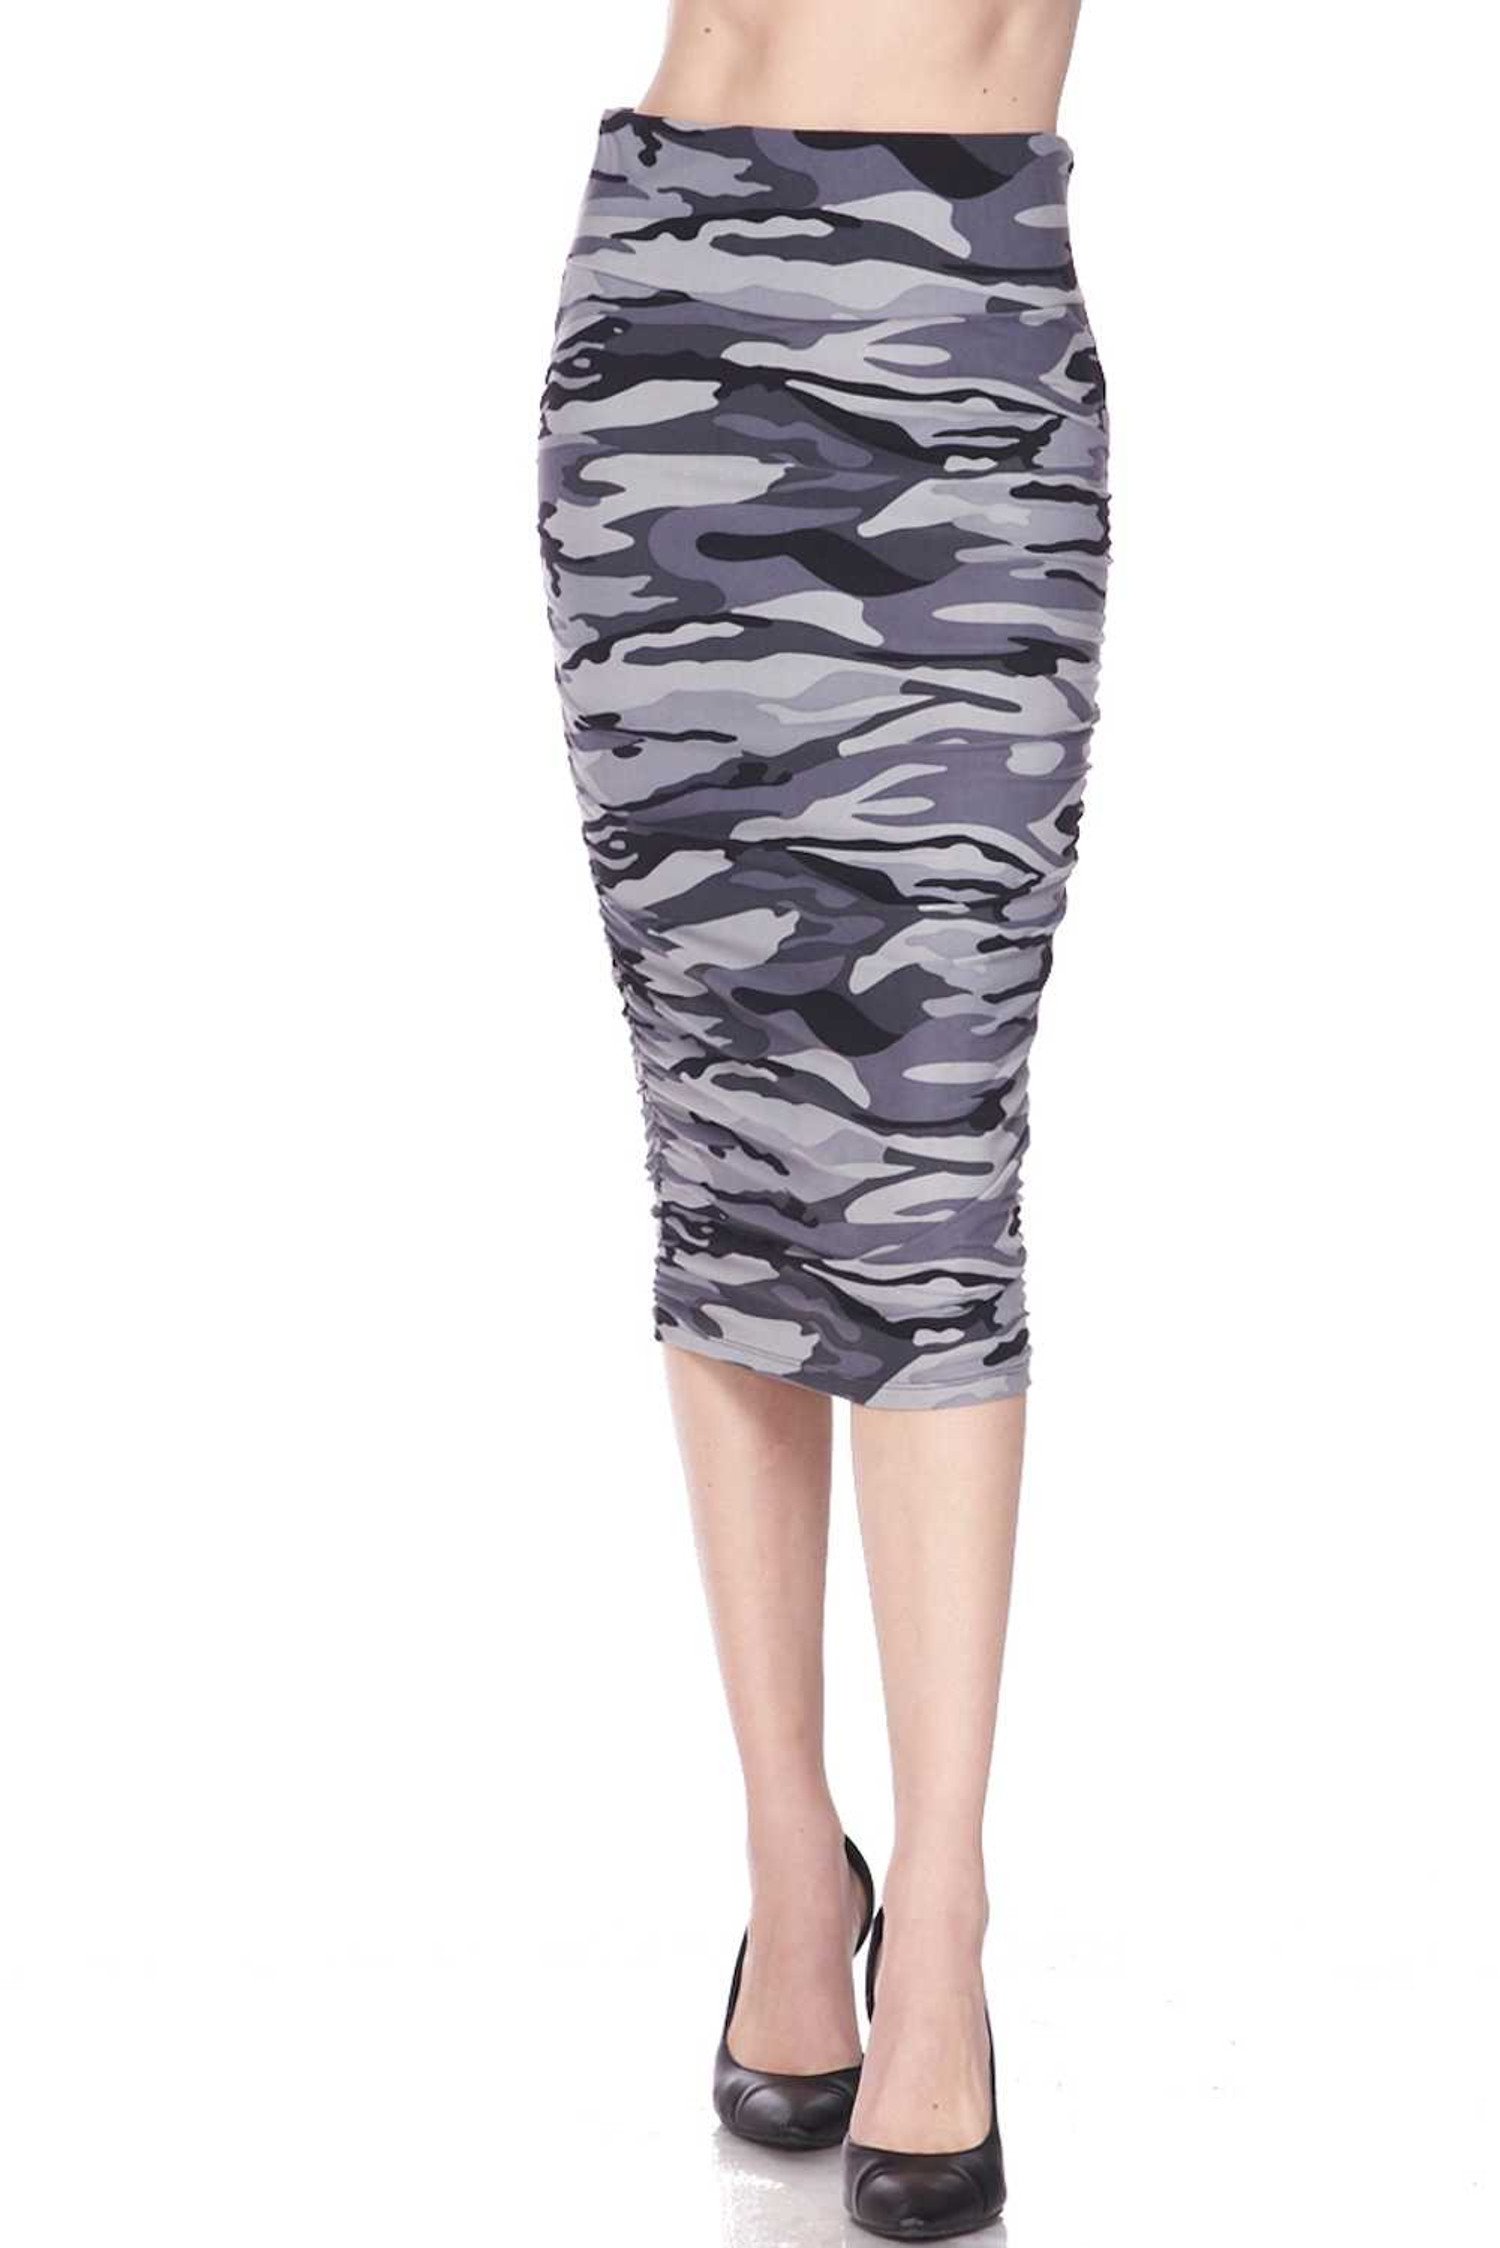 Buttery Soft Charcoal Camouflage Pencil Skirt